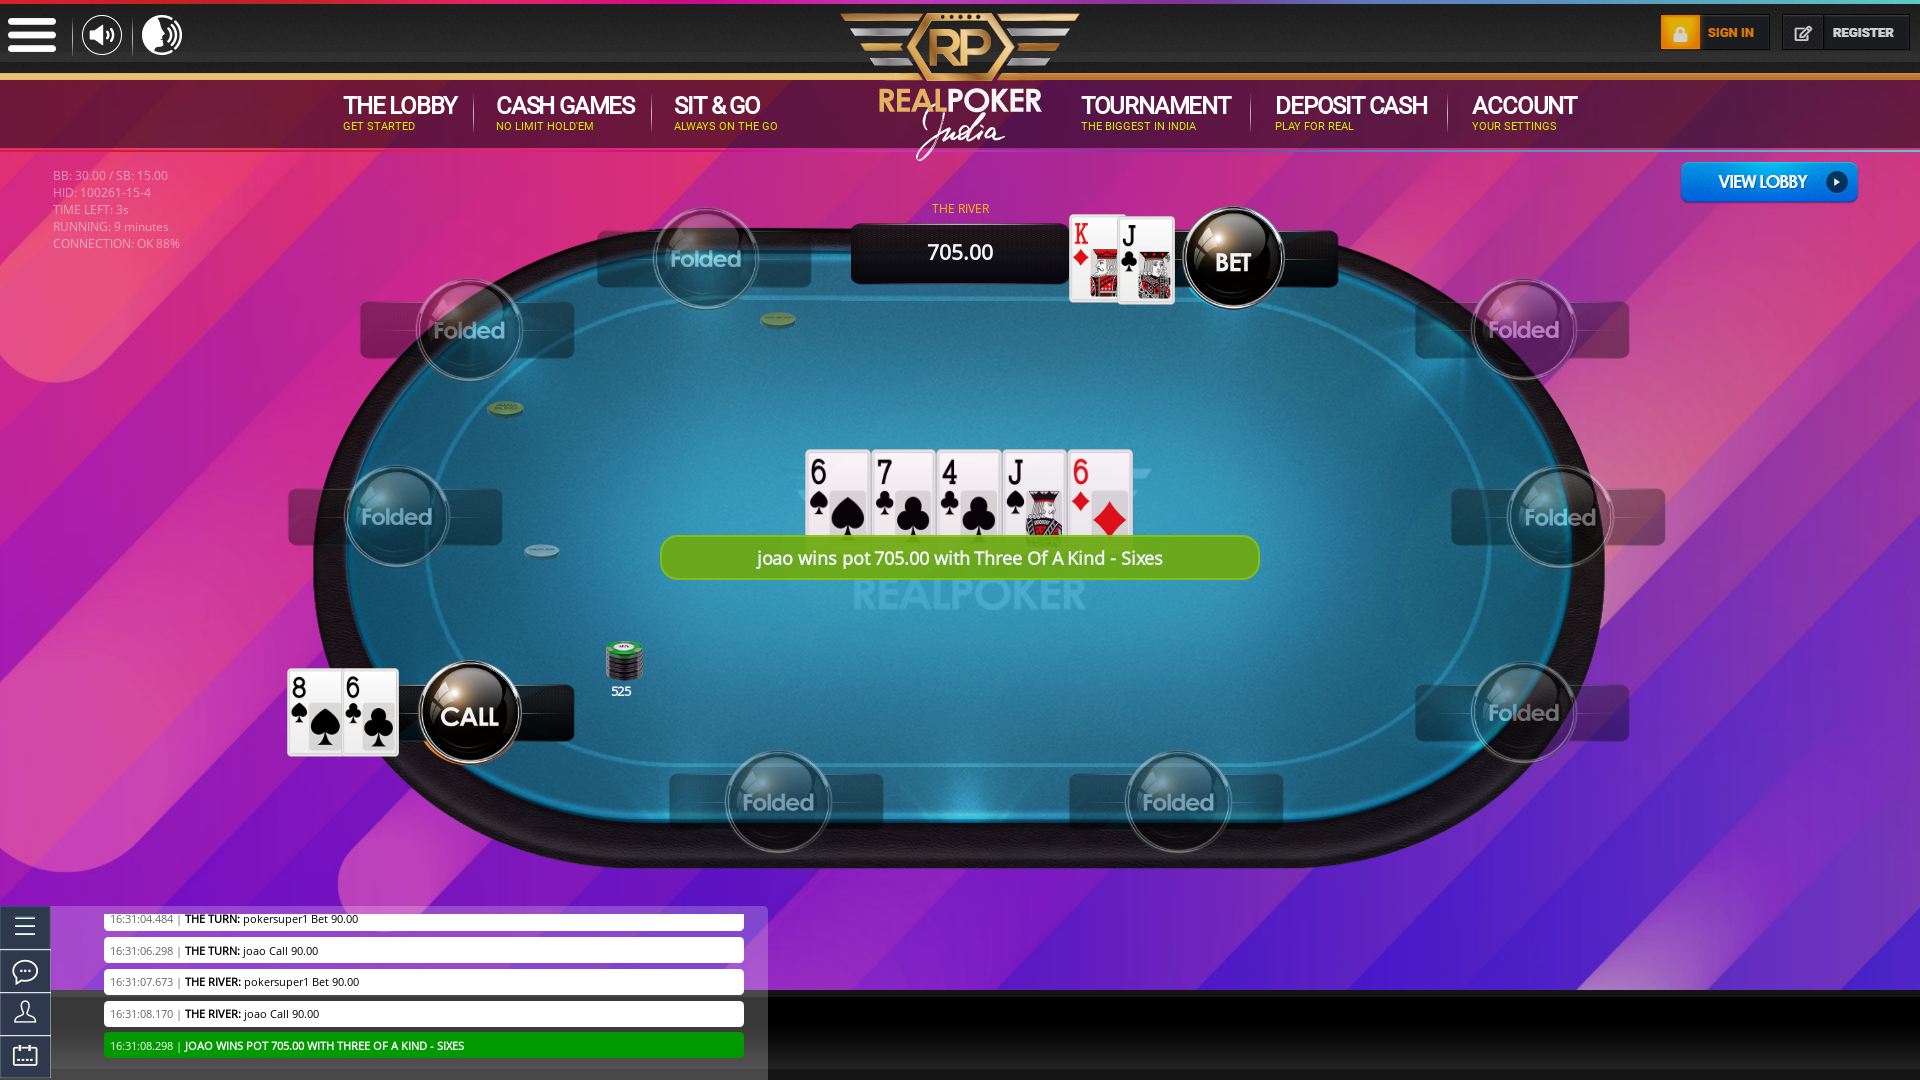 Calcutta Real Poker from July